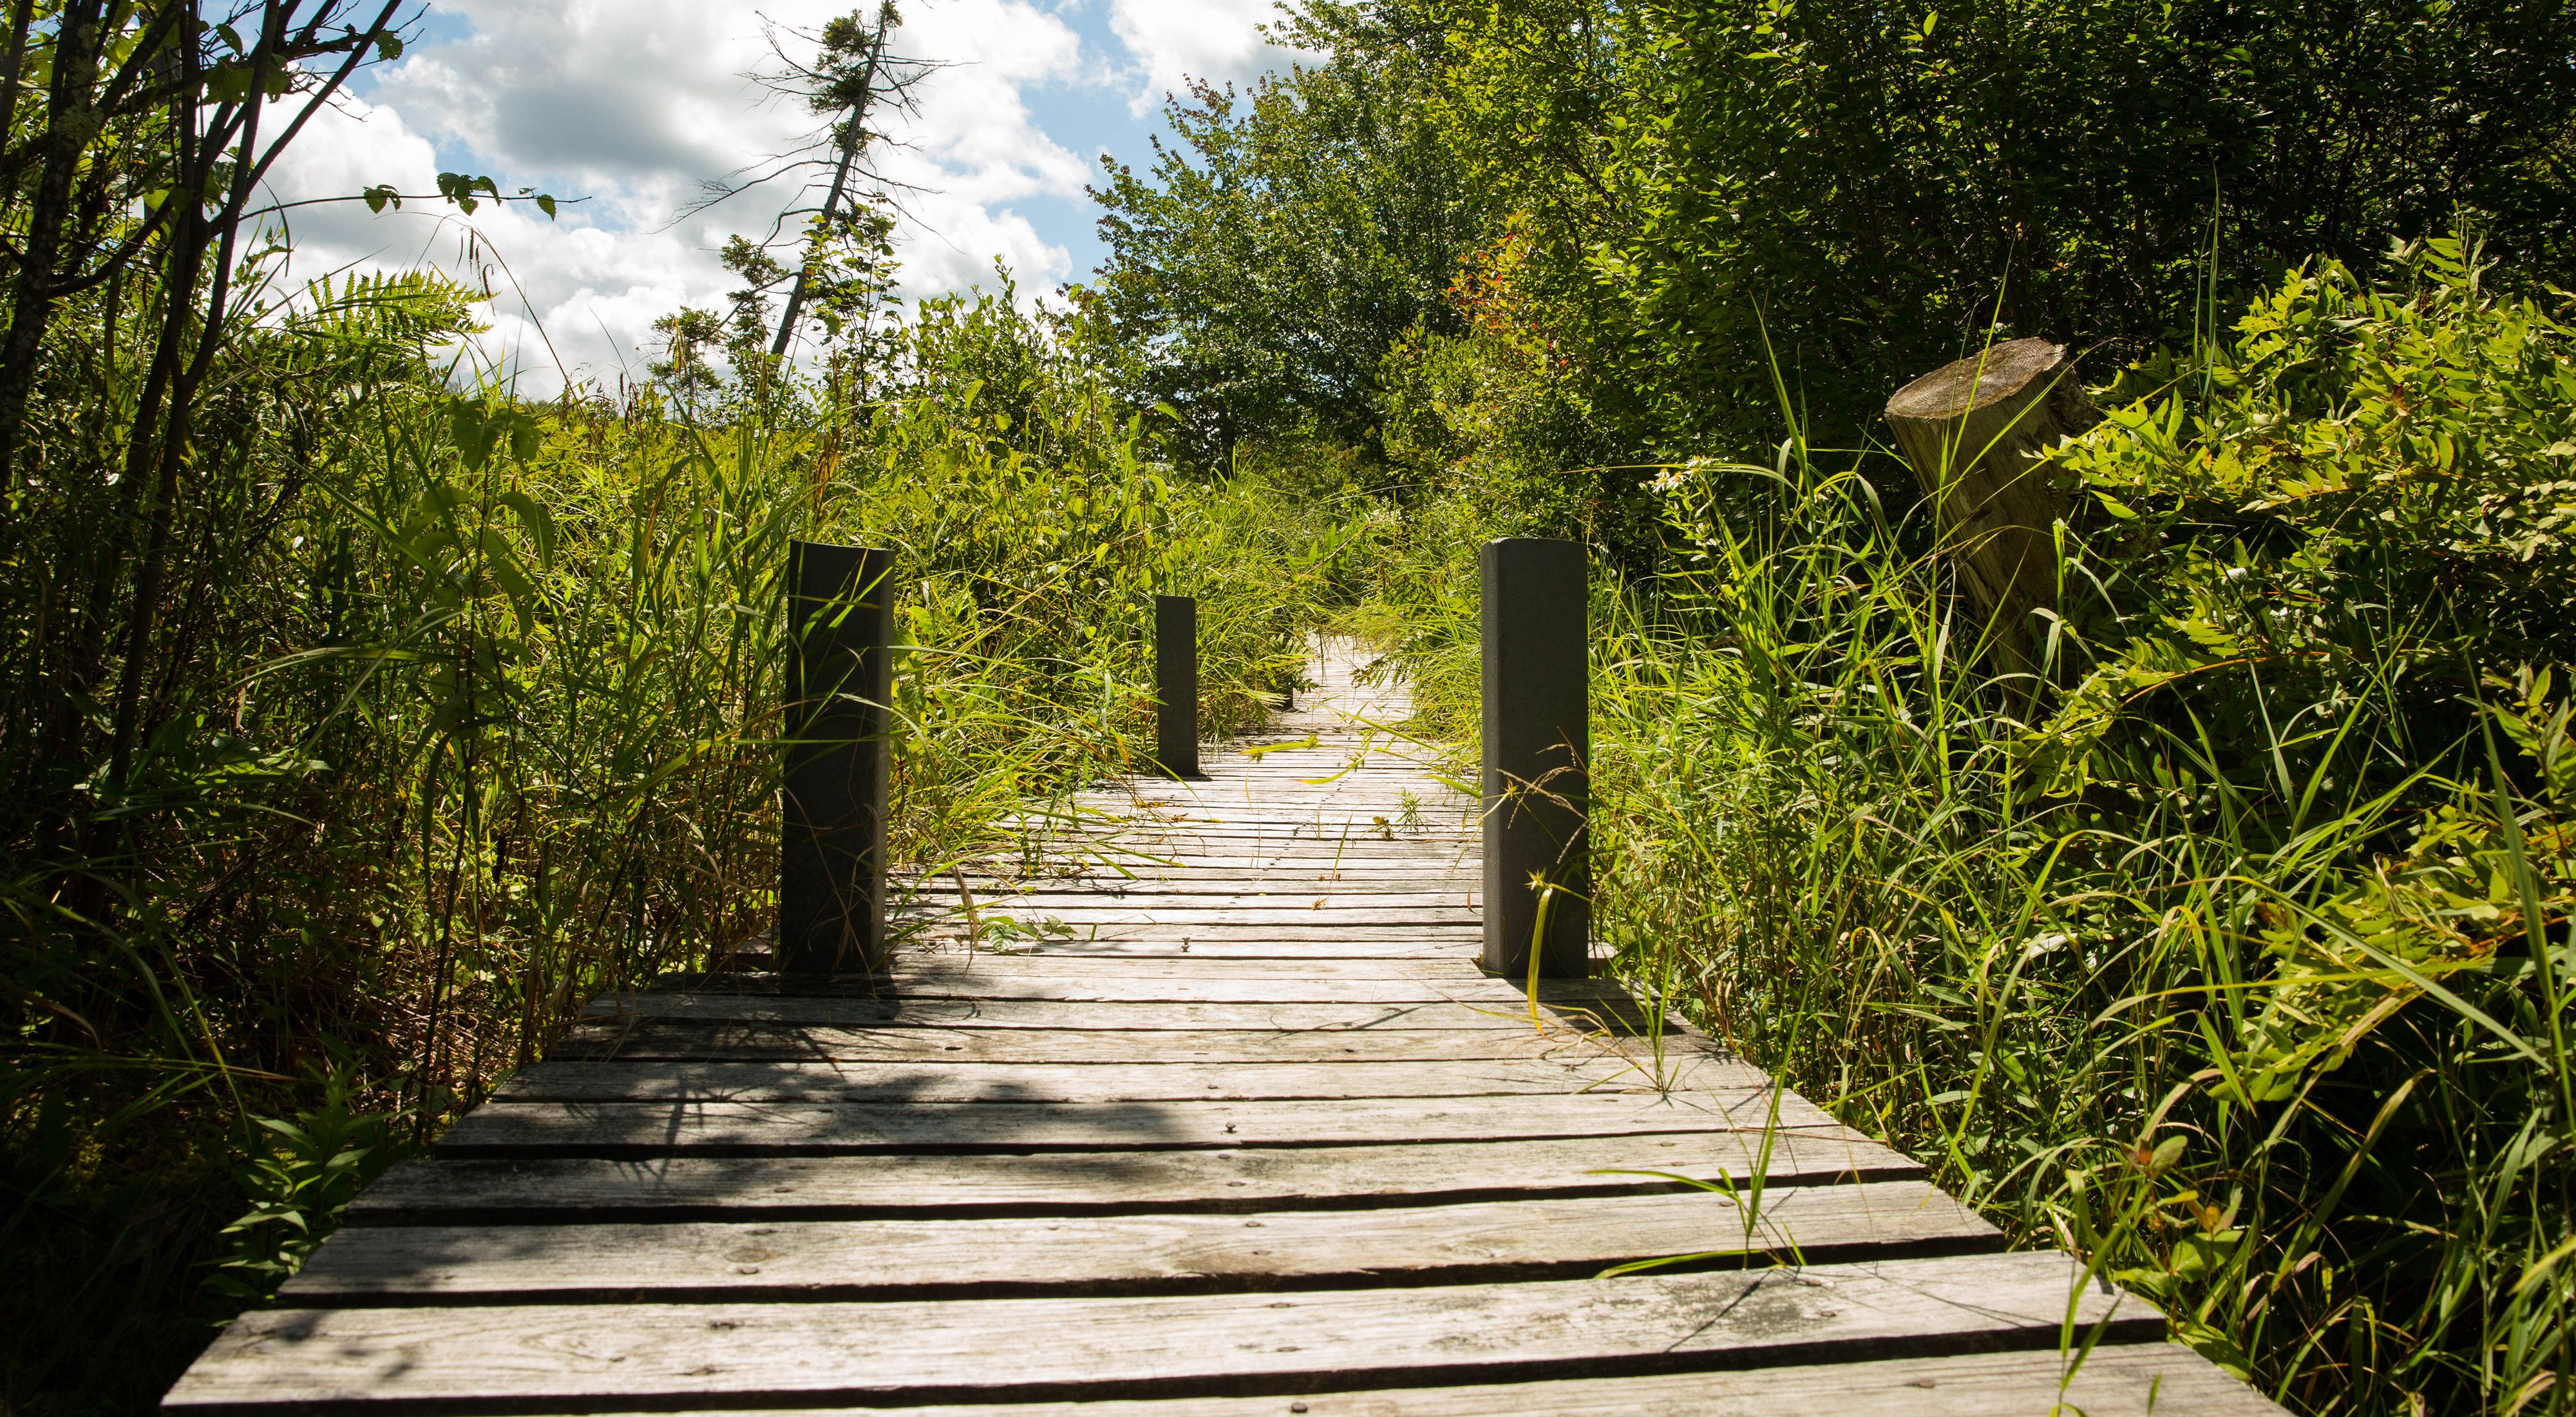 Boardwalk at Hawley Bog Preserve